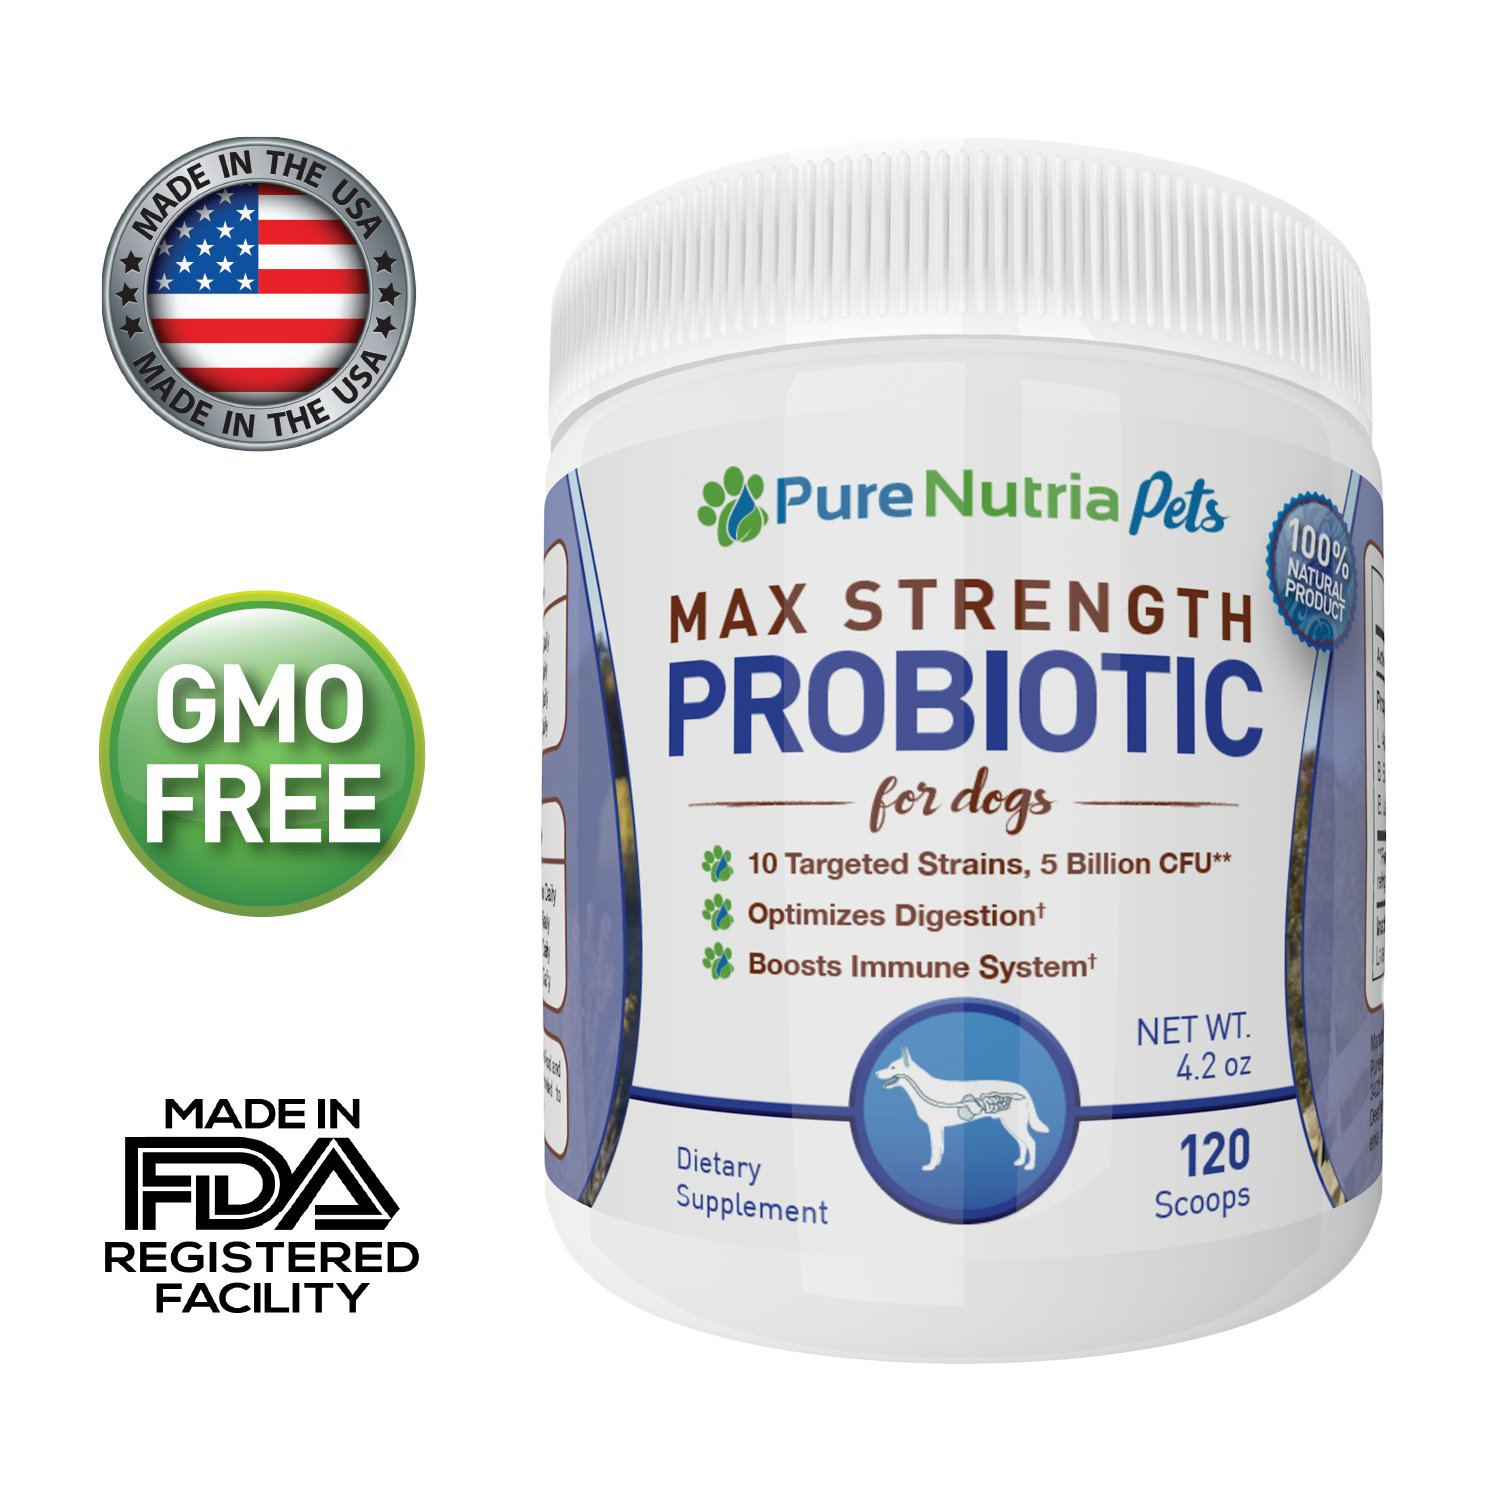 PureNutria 5 Billion CFU Dog Probiotic and Digestive Health Supplement for Dogs - 10 Targeted Strains in Our Best Rated Probiotic for Pets